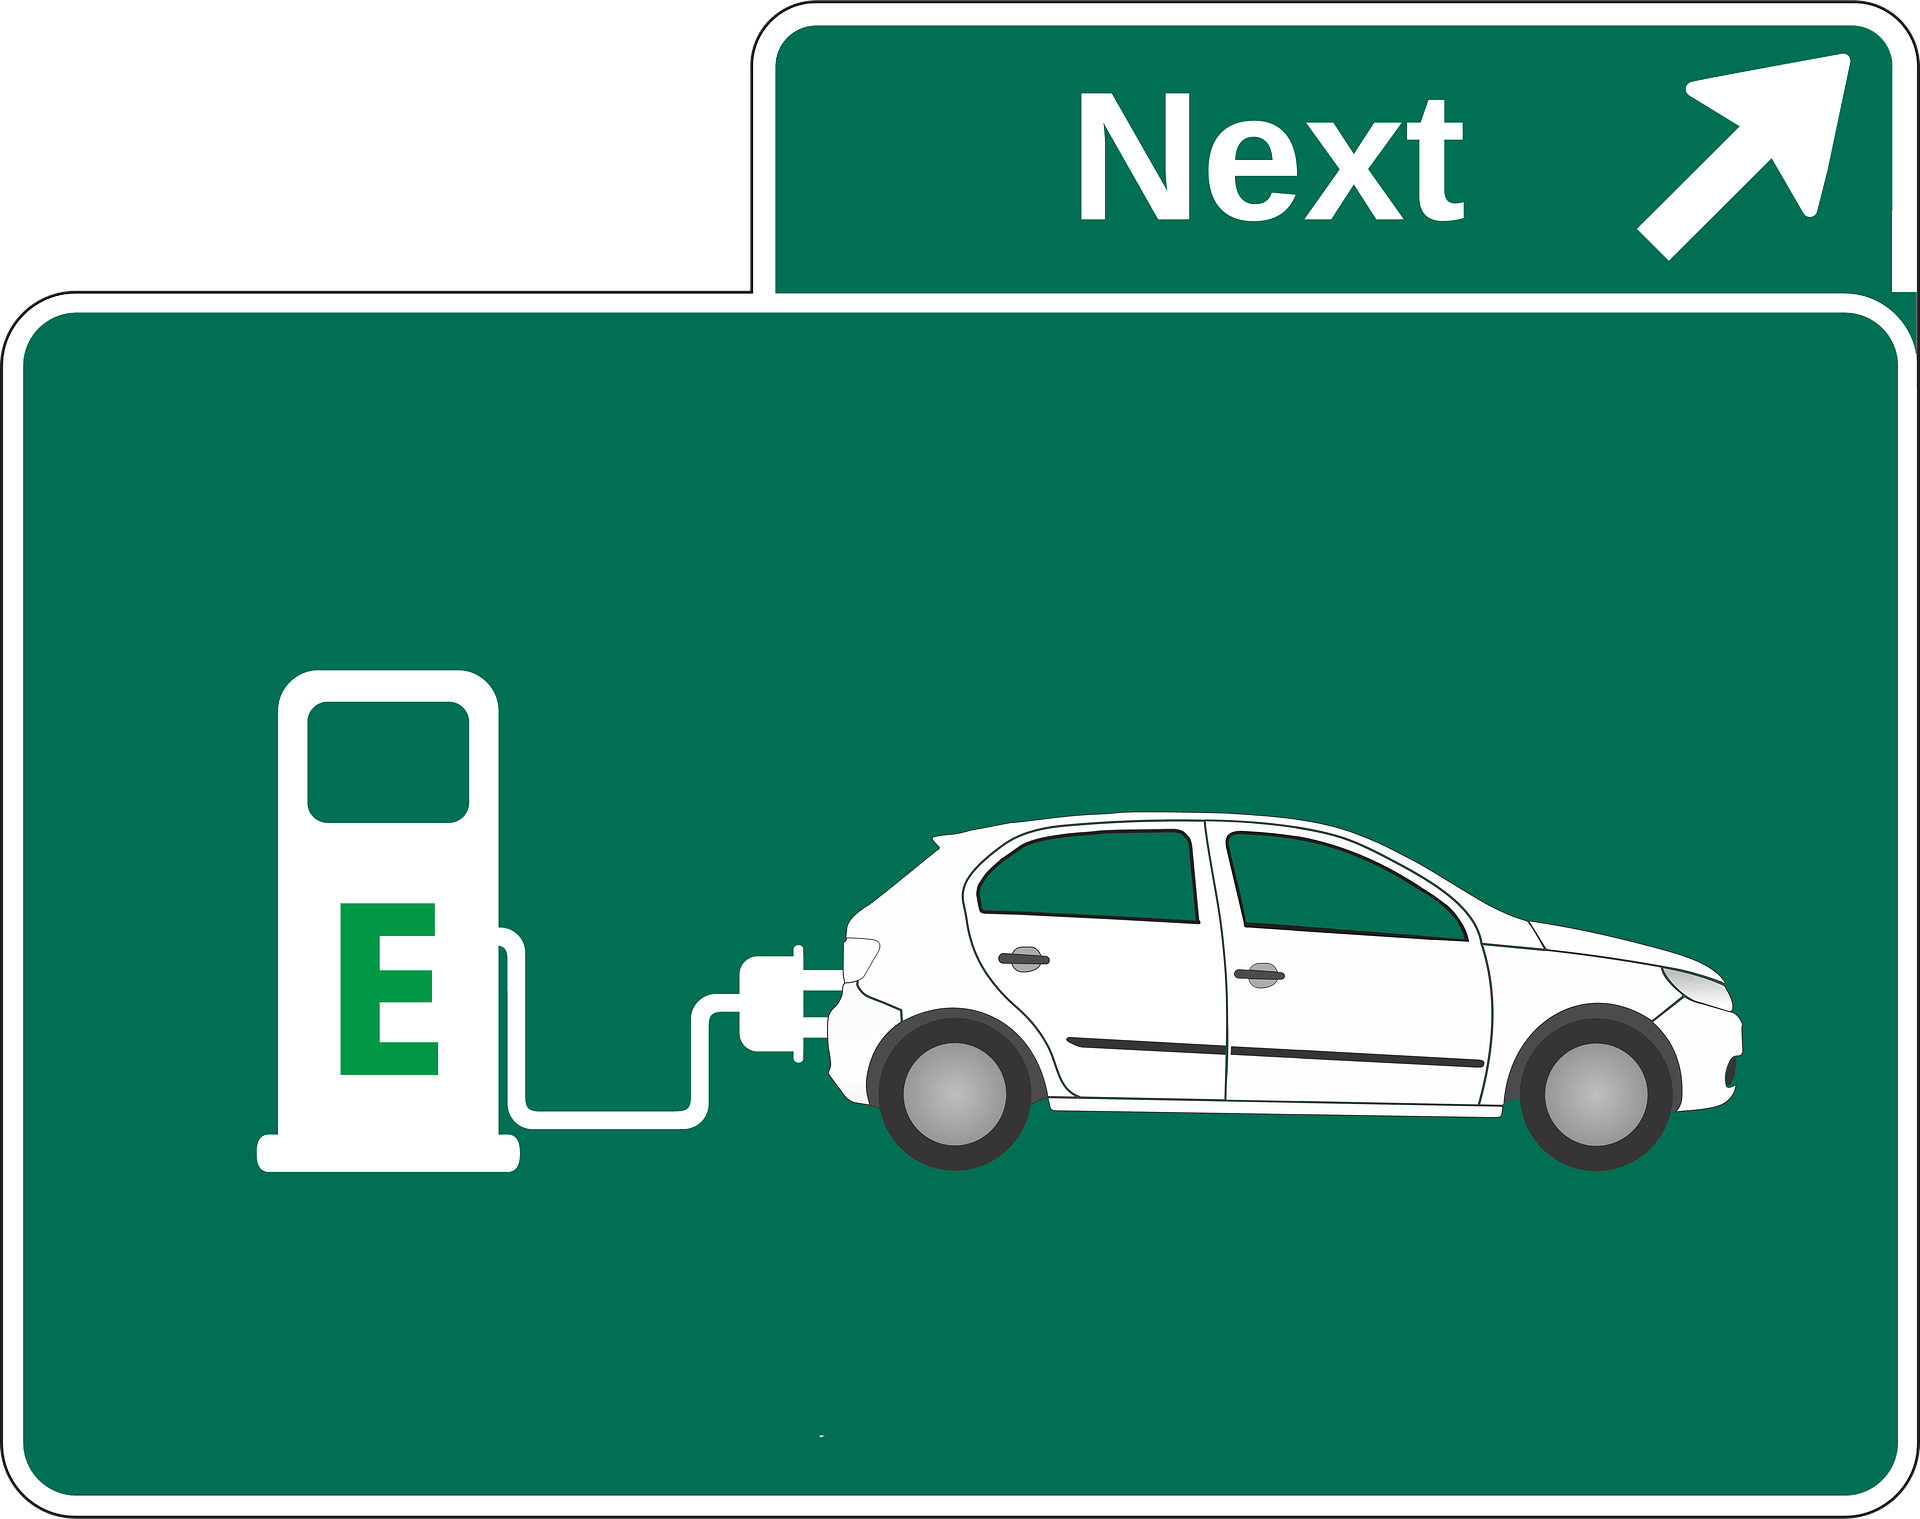 With Gas Tax Revenue Down, PA Considers Fee for Electric Vehicles